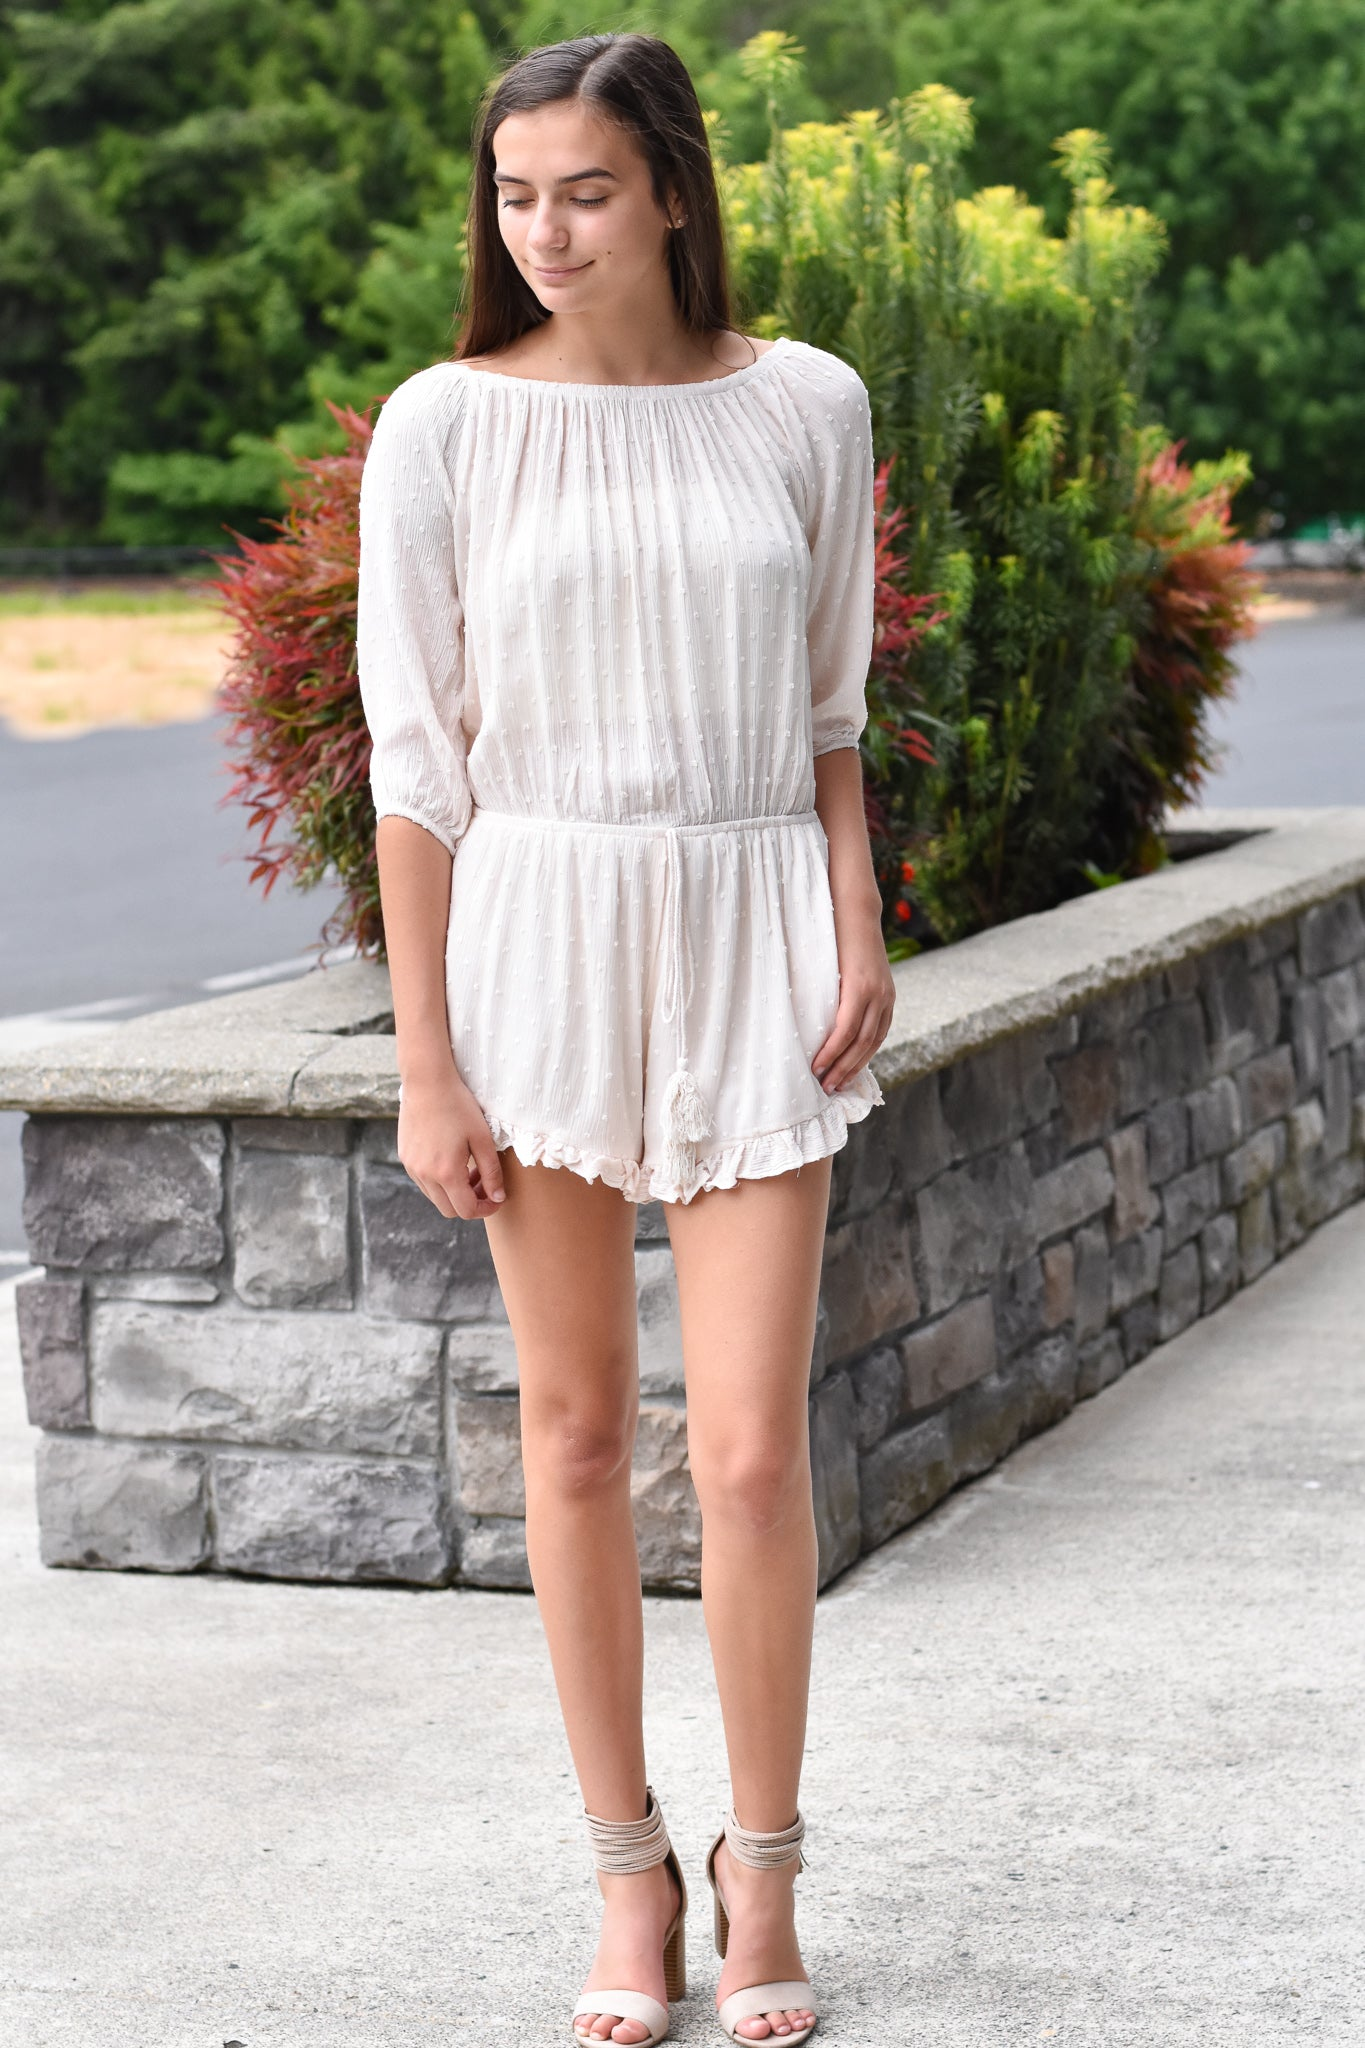 Anna Blush Off Shoulder Romper